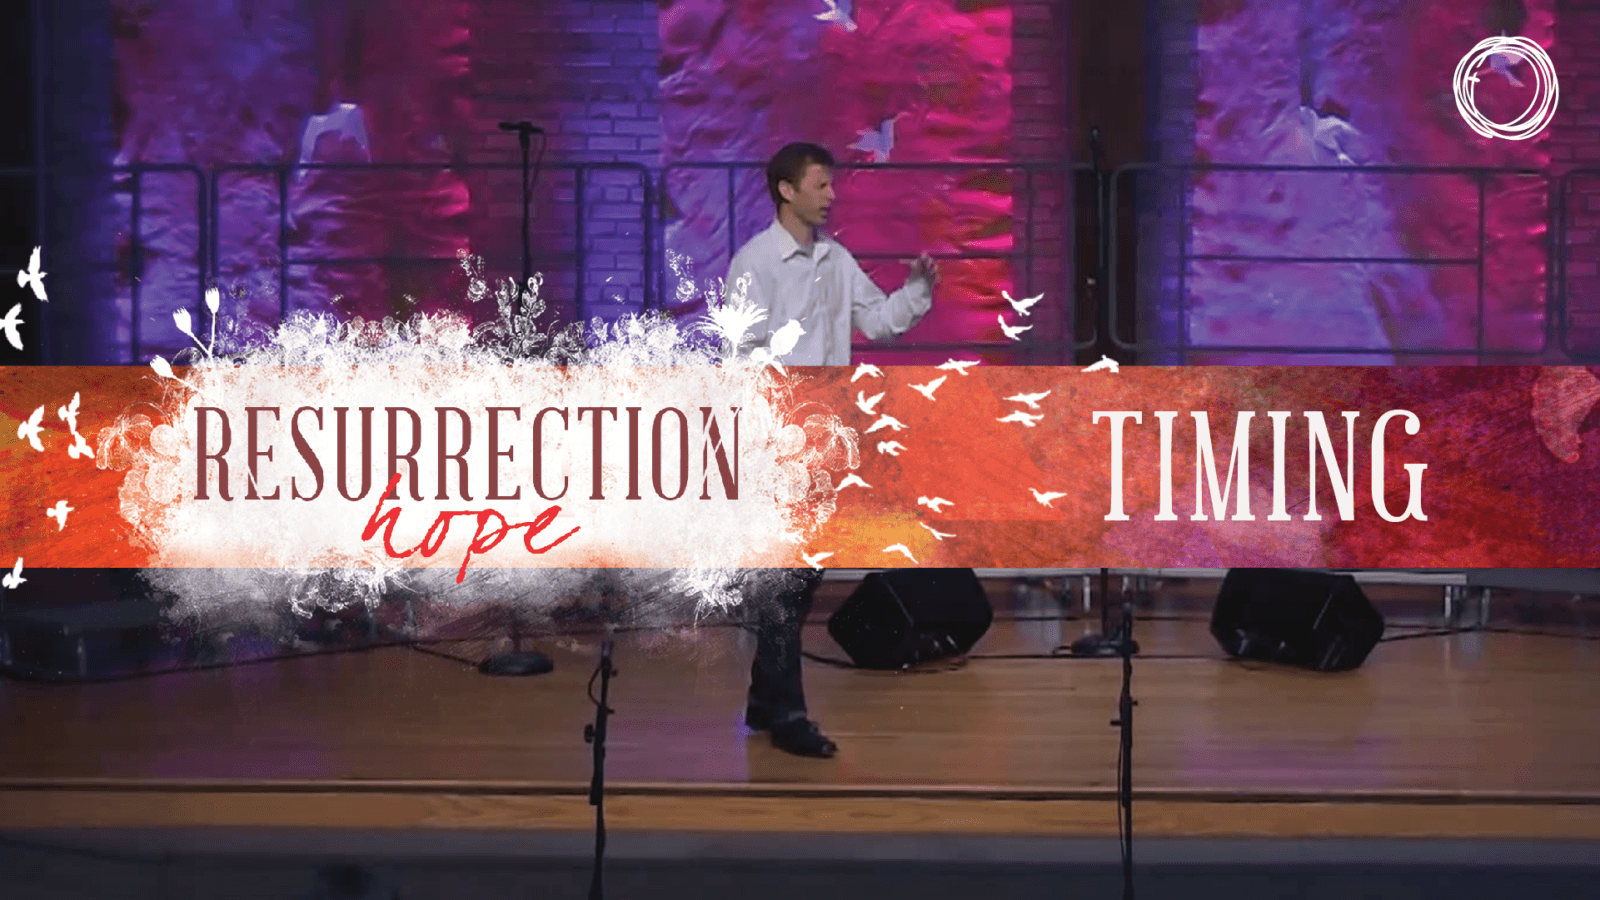 Resurrection Timing